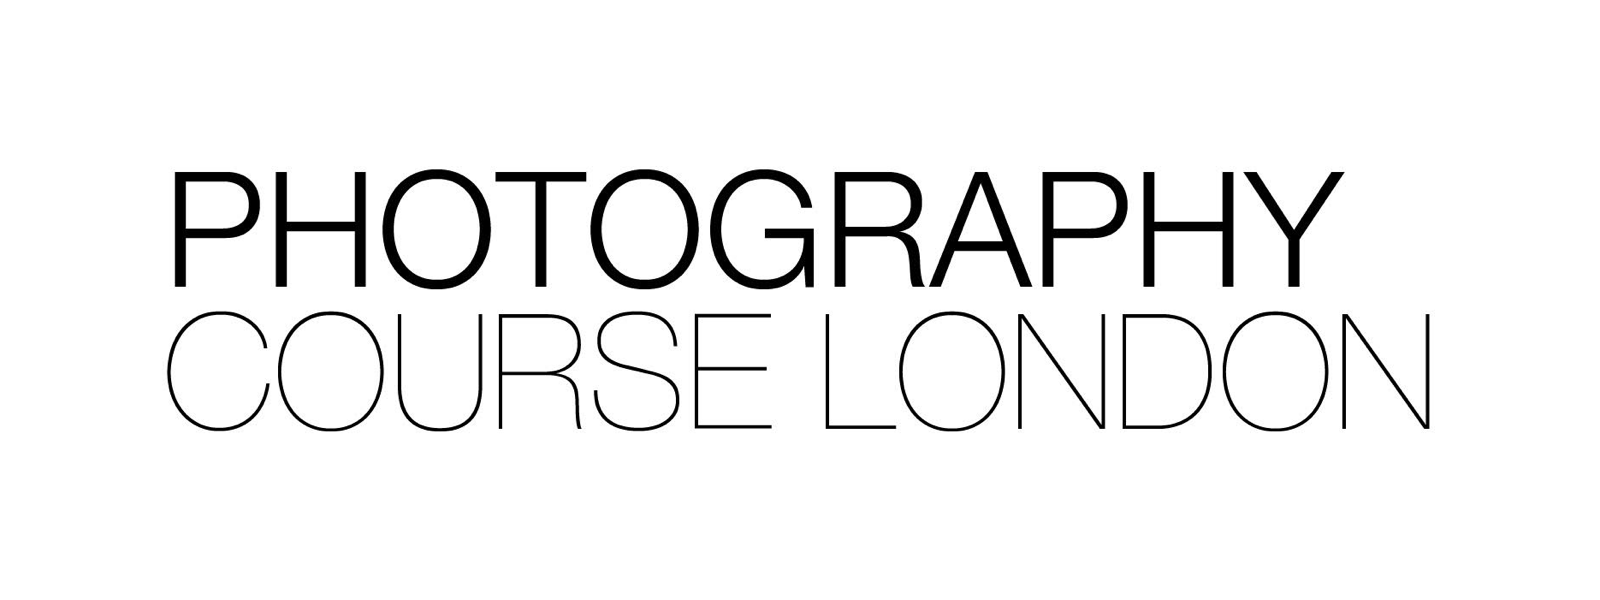 Portraiture Masterclass by Photography Course London - photography in London